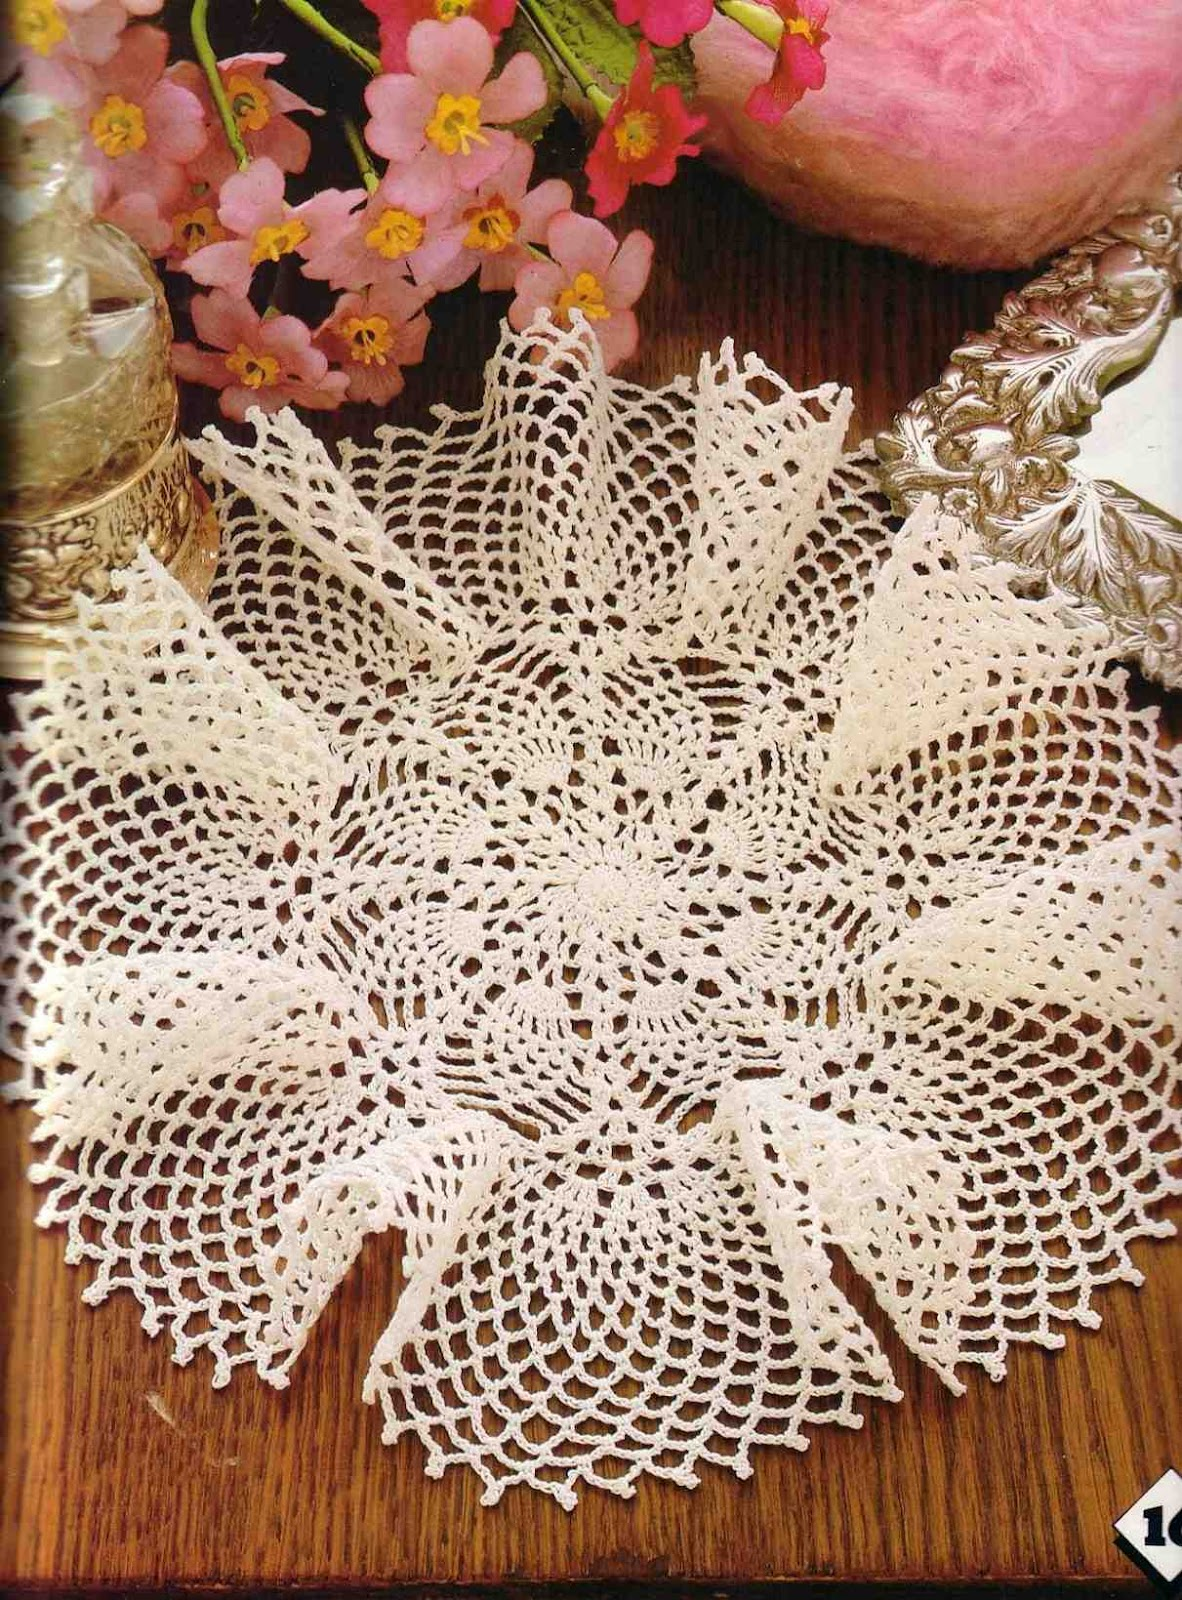 It's just a picture of Luscious Free Downloadable Crochet Patterns